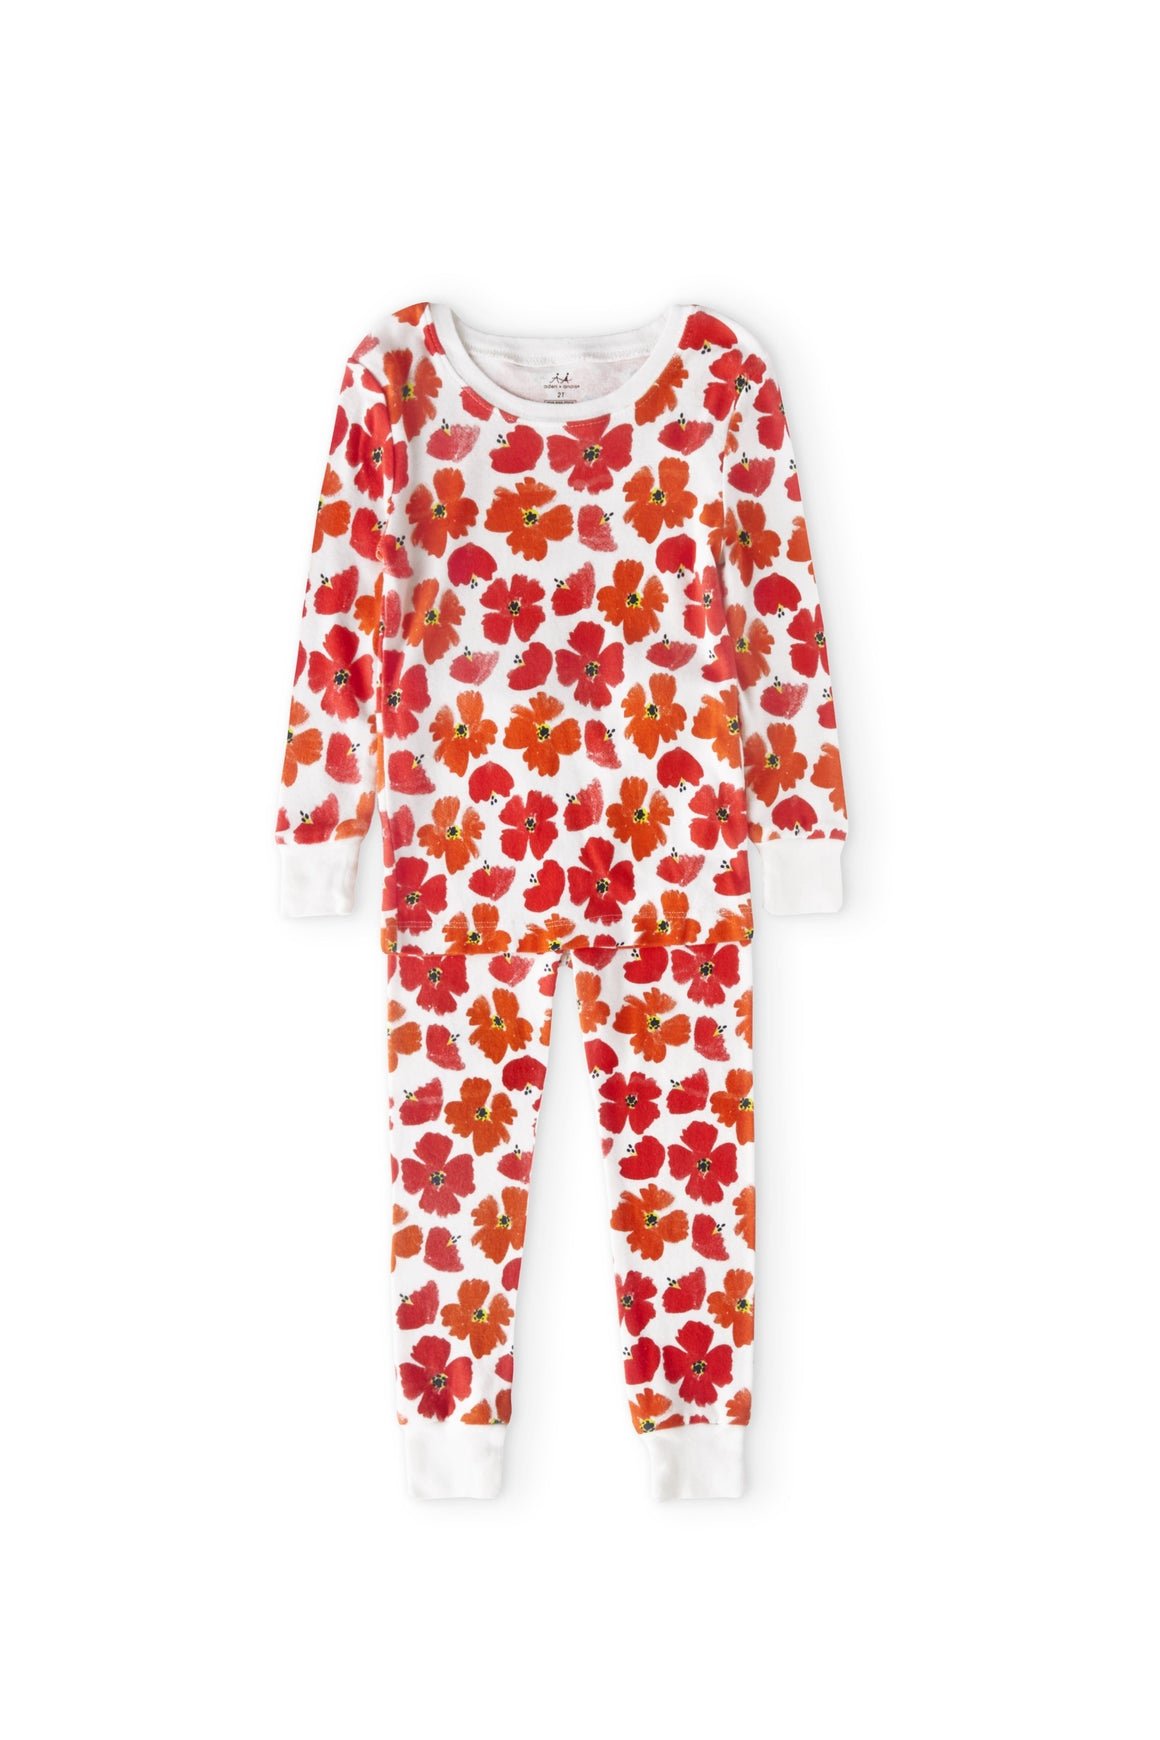 Aden & Anais Sleepwear, 2 piece cotton pajama set, shown in red poppy print